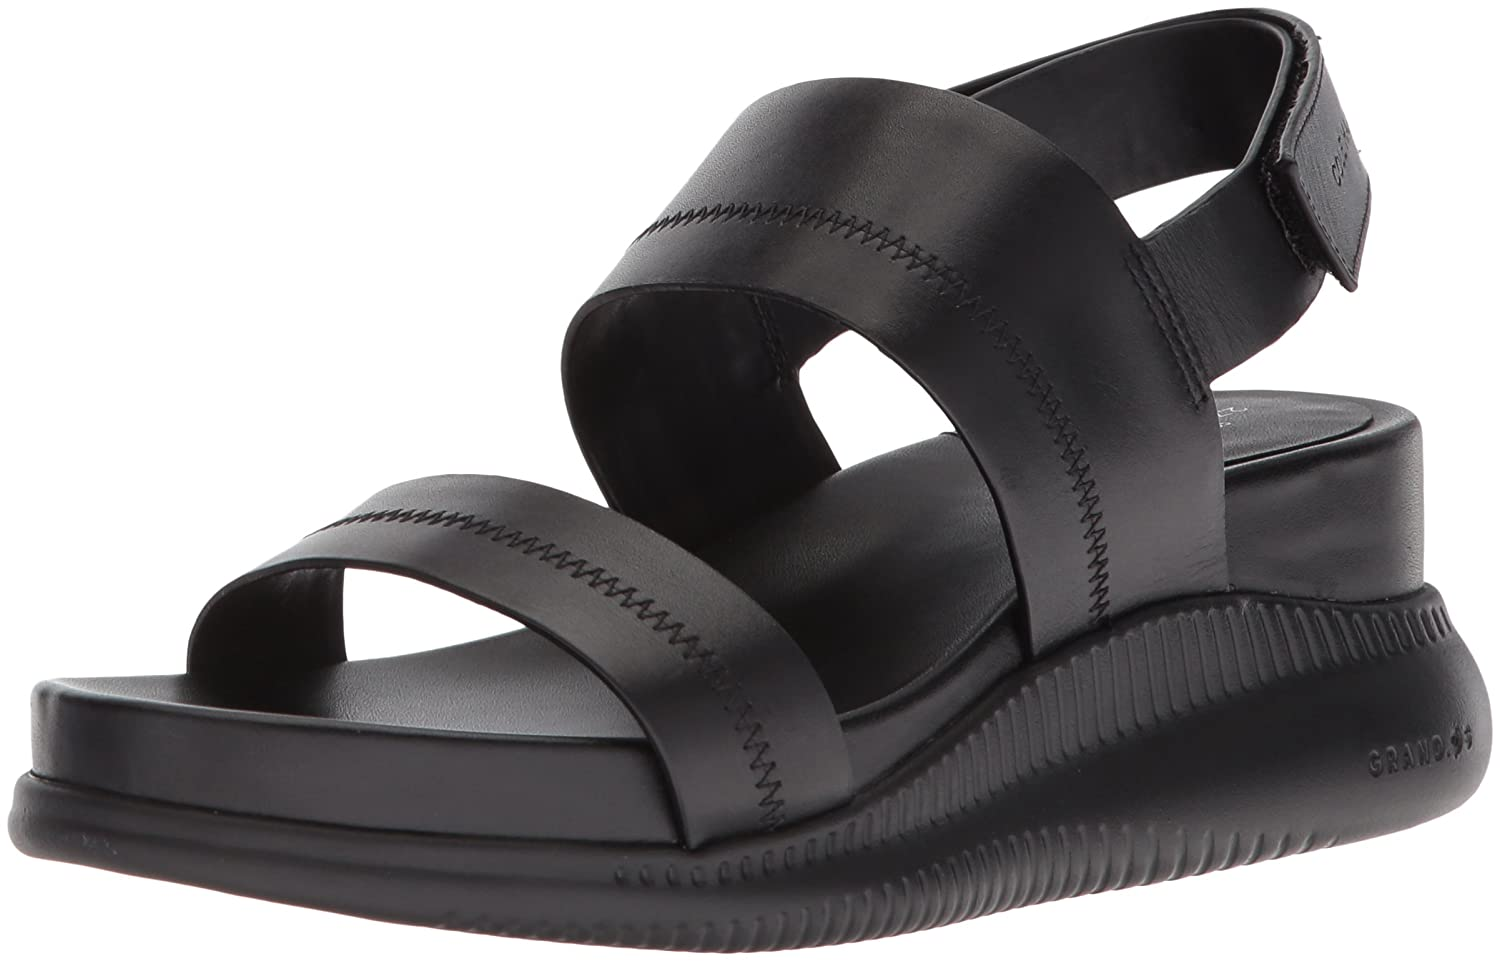 Cole Haan Women's 2.Zerogrand Slide Sport Sandal, Black Leather B073WPDM3B 7 B(M) US|Black Leather